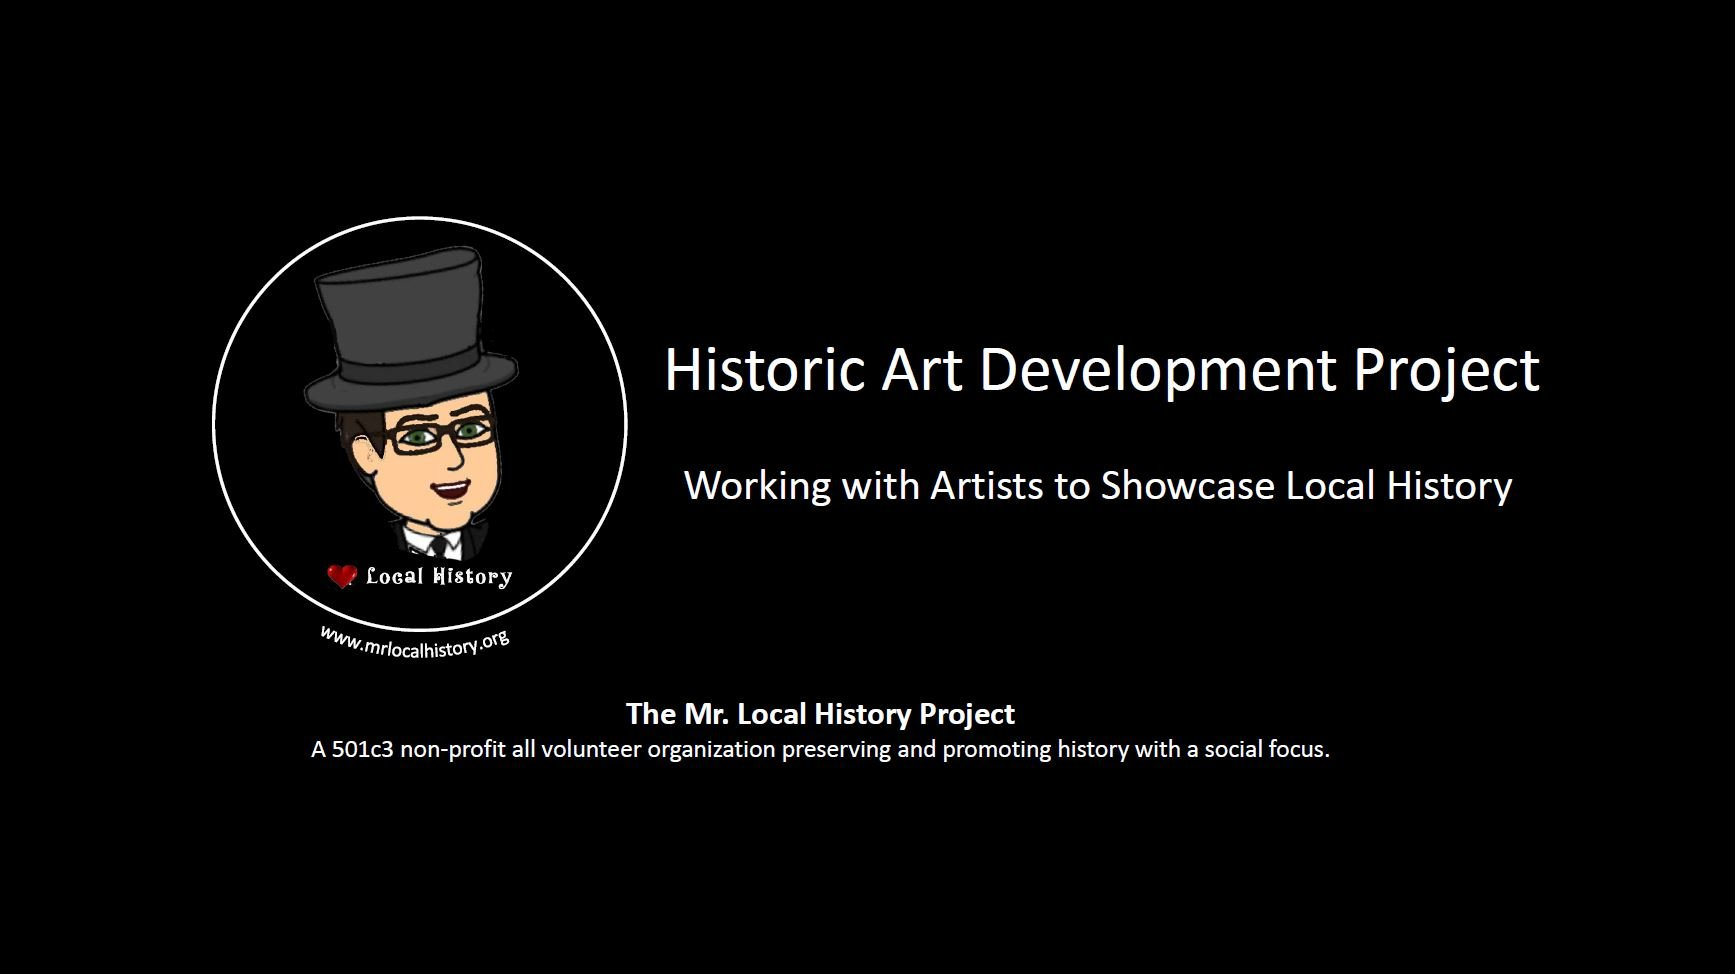 The Mr. Local History Art Initiative